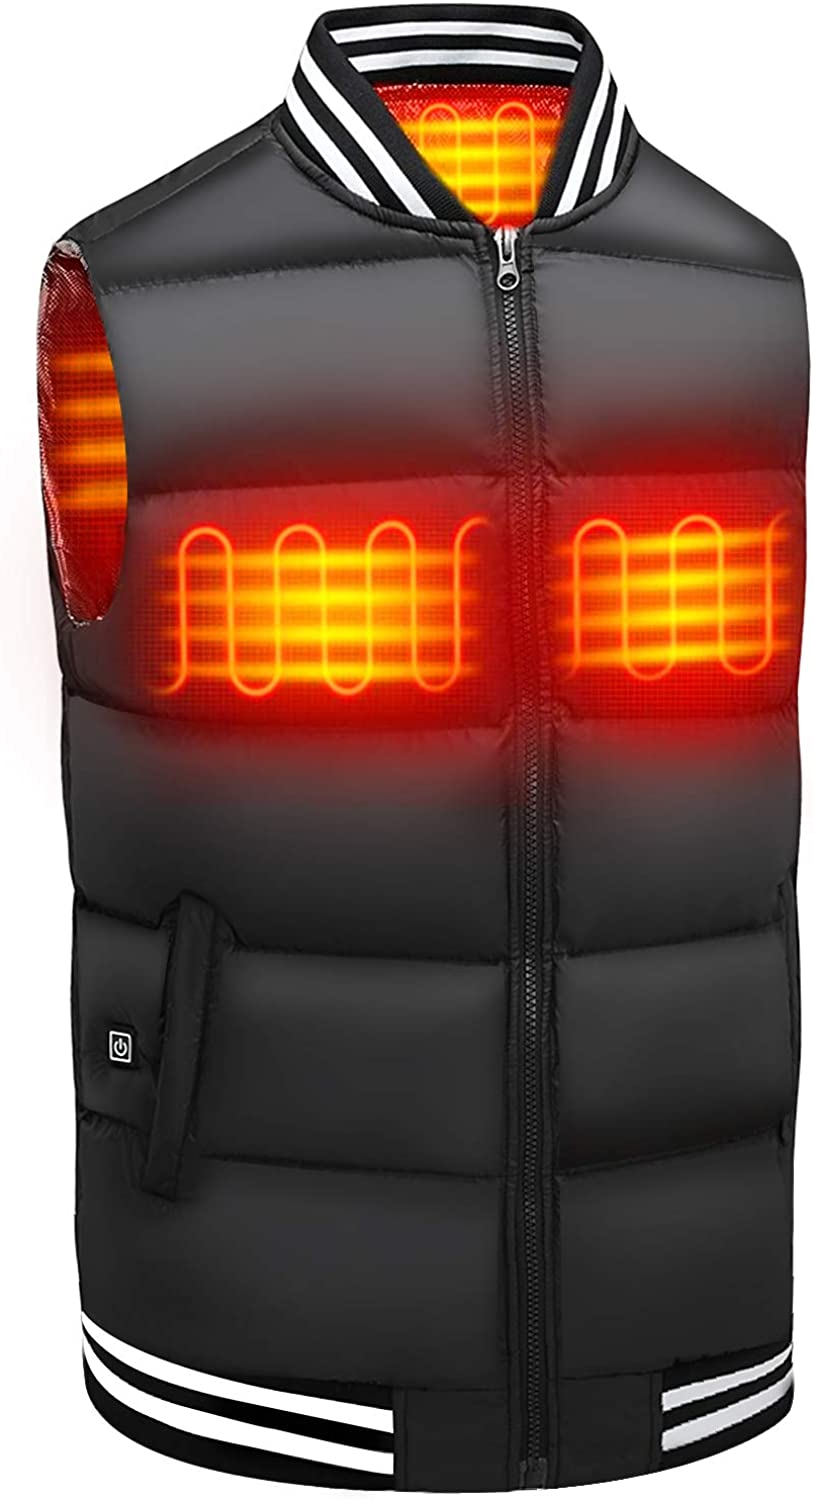 Heated Vest for Men Women, Electric Warming Vest Jacket with 5 Heating Zones (Battery Not Included)